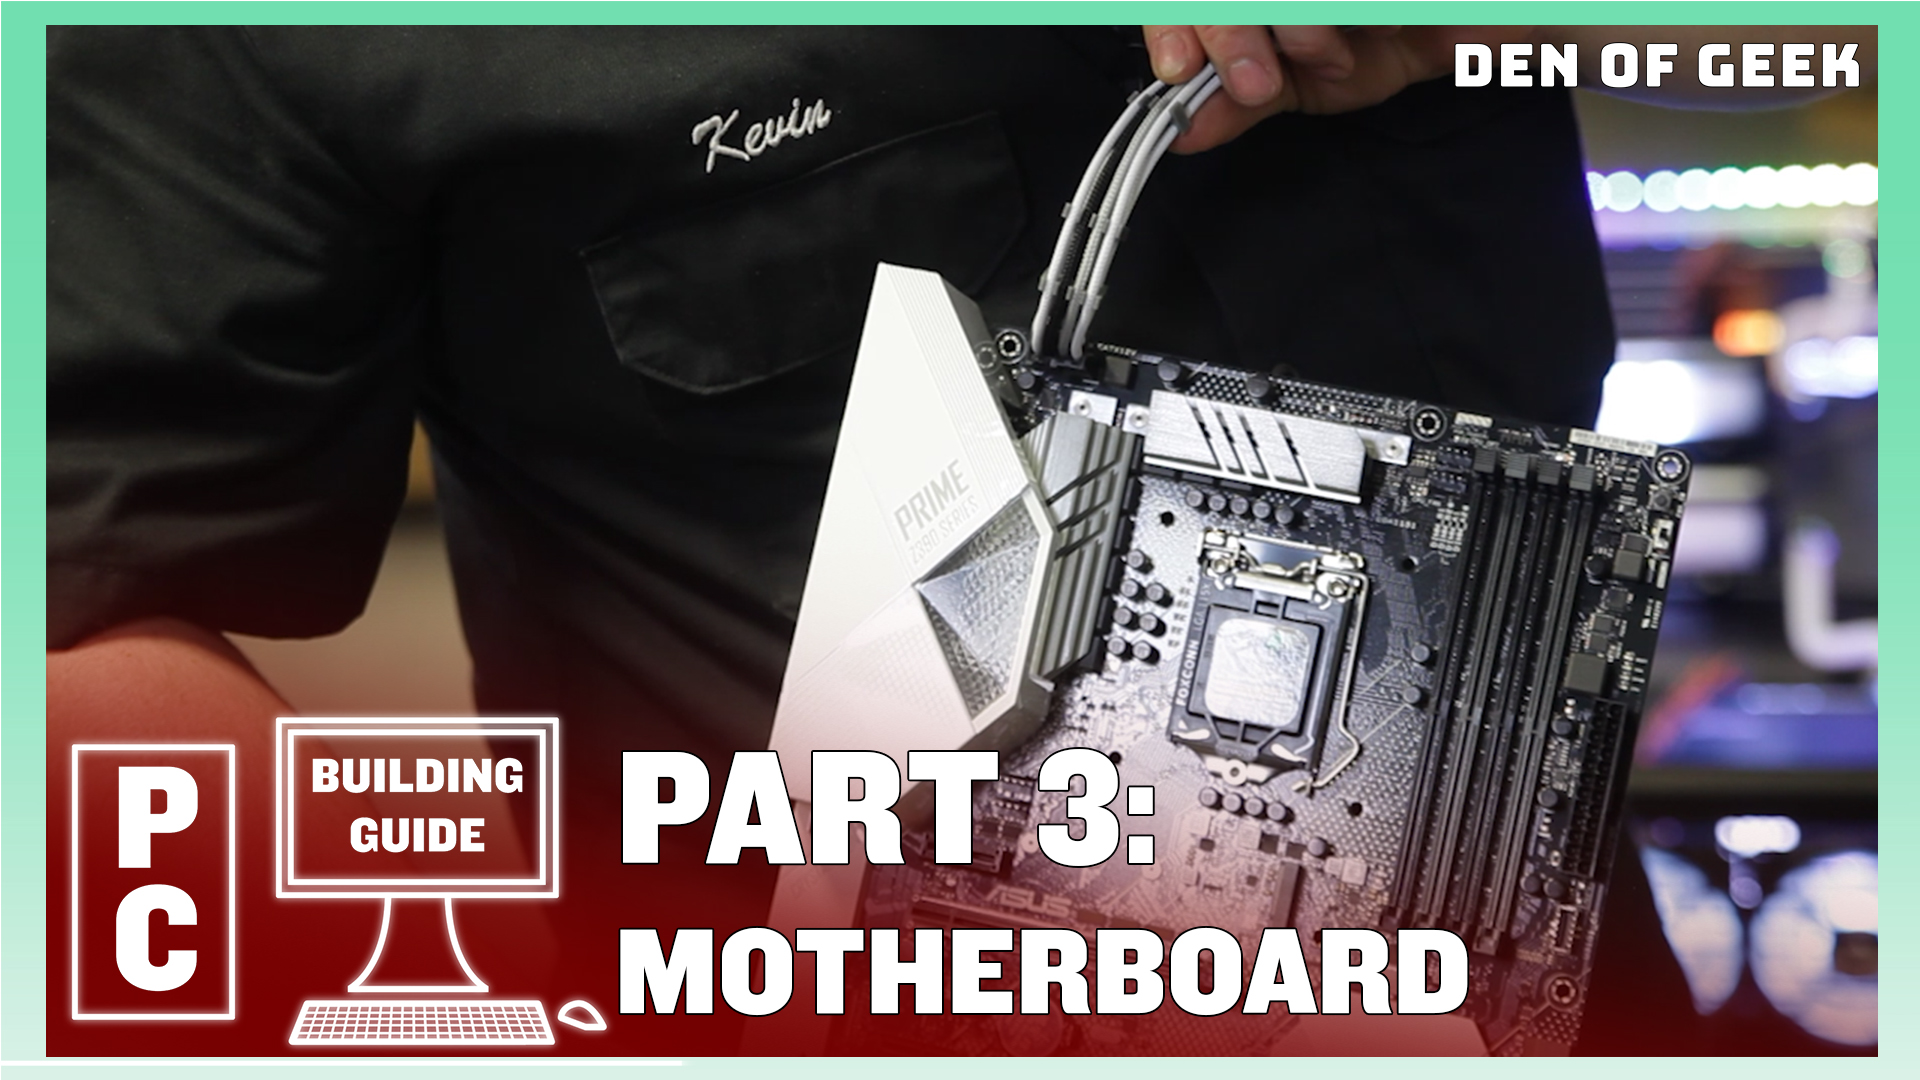 Den of Geek PC Building Guide: Motherboard (Part 3)